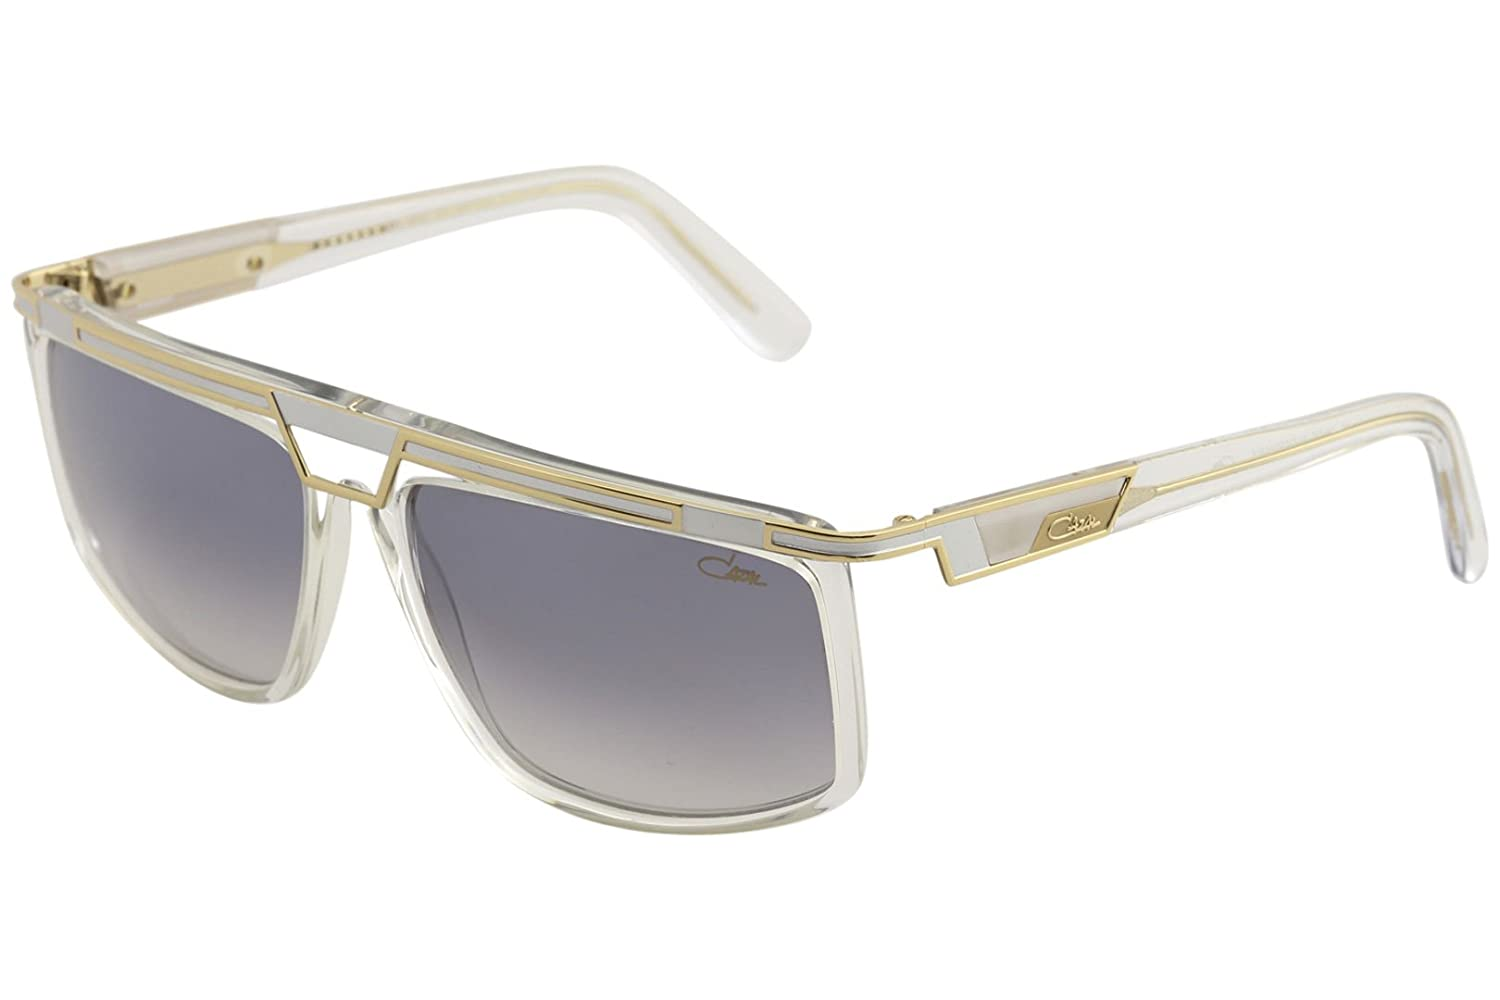 368fc25595c Amazon.com  Cazal 8036 Sunglasses 003SG Crystal-Gold Light Grey Gradient  Lens 62mm  Clothing